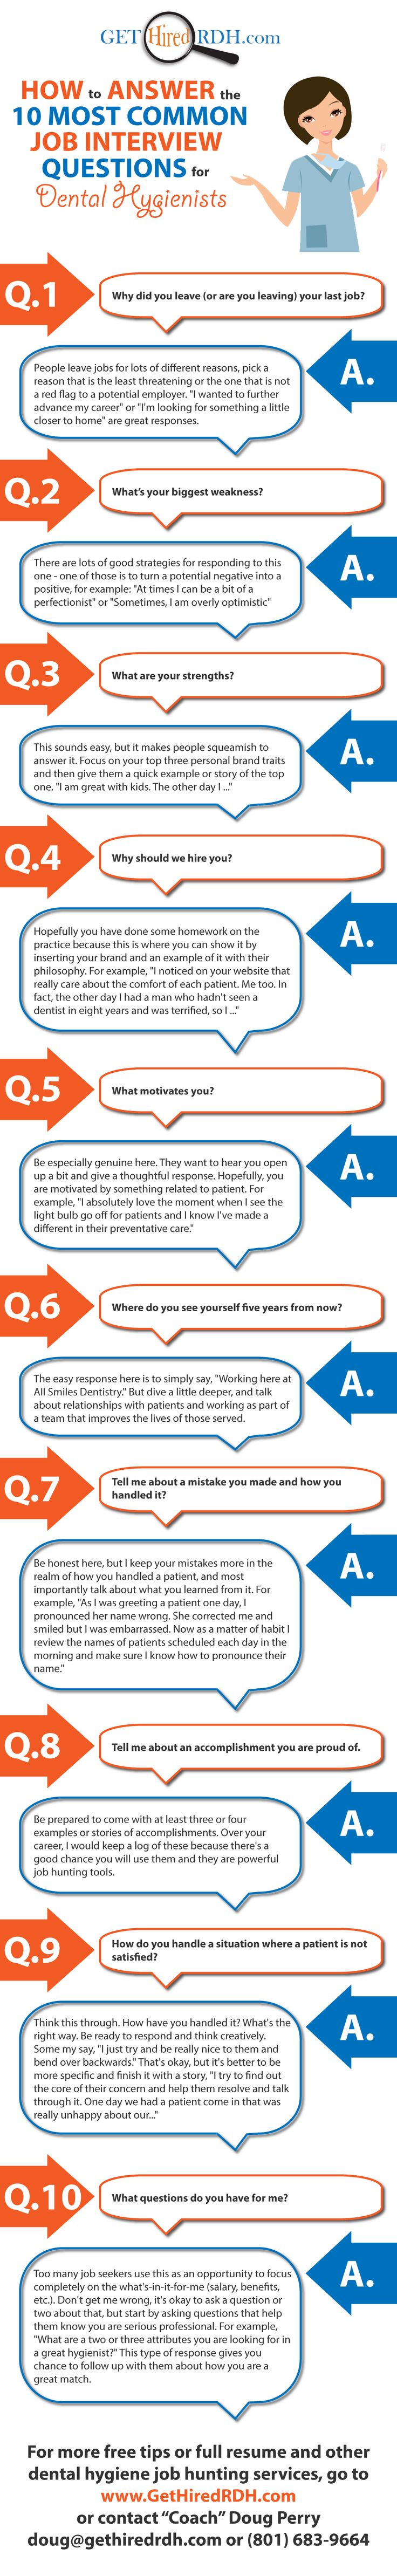 best ideas about interview questions for nurses how to answer the 10 most common interview questions for dental hygienists get more at gethiredrdh